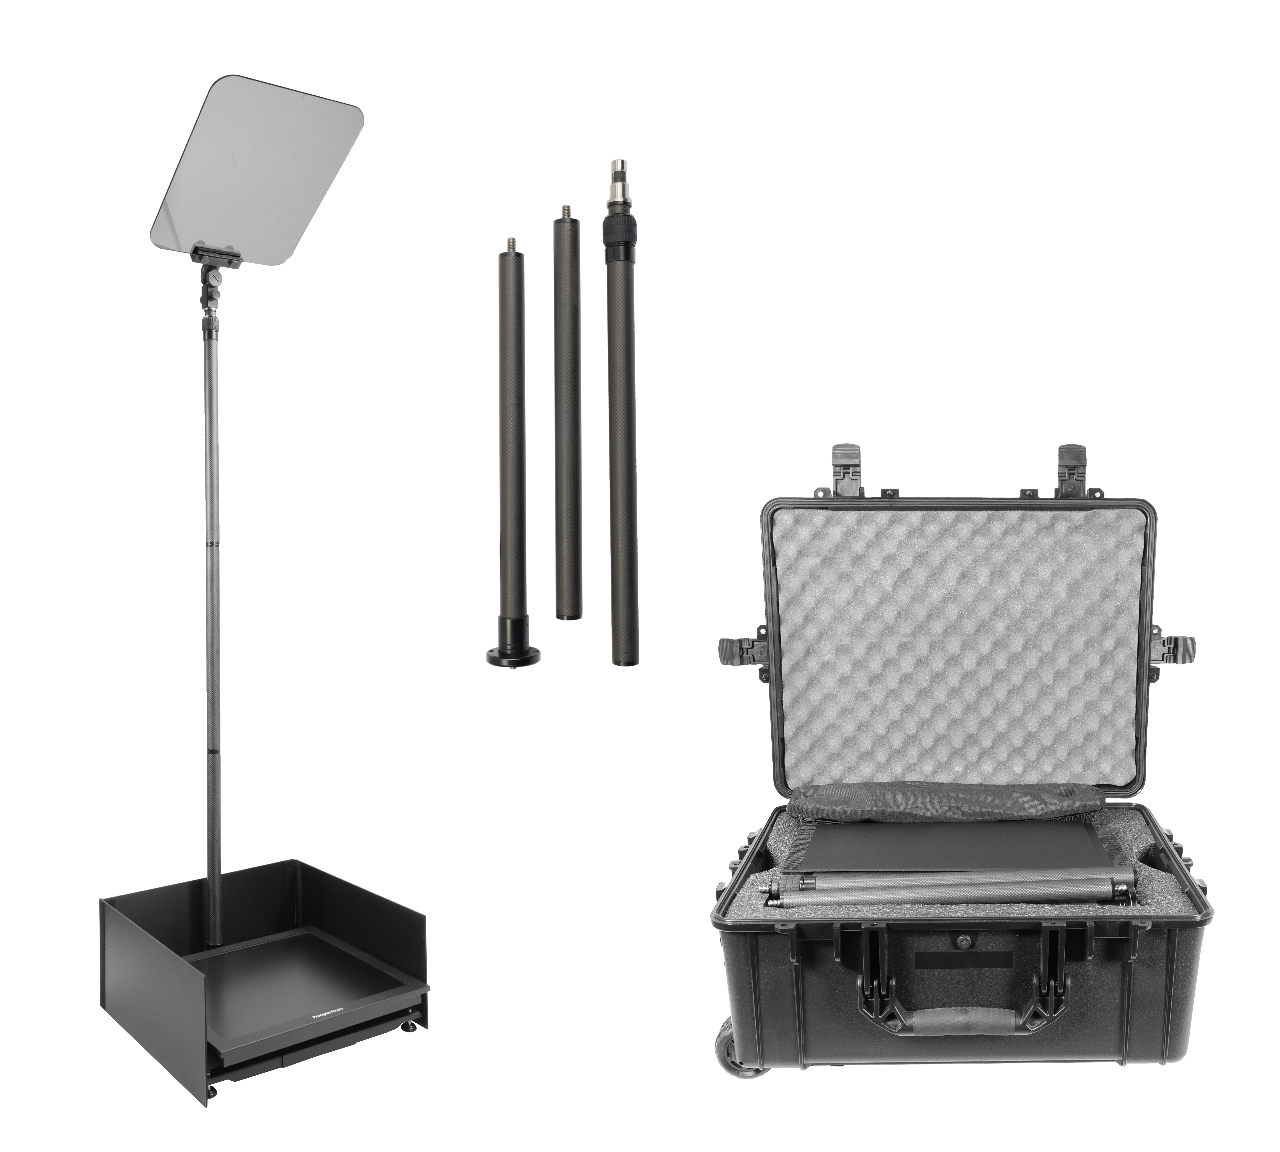 Packaged picture of a teleprompter